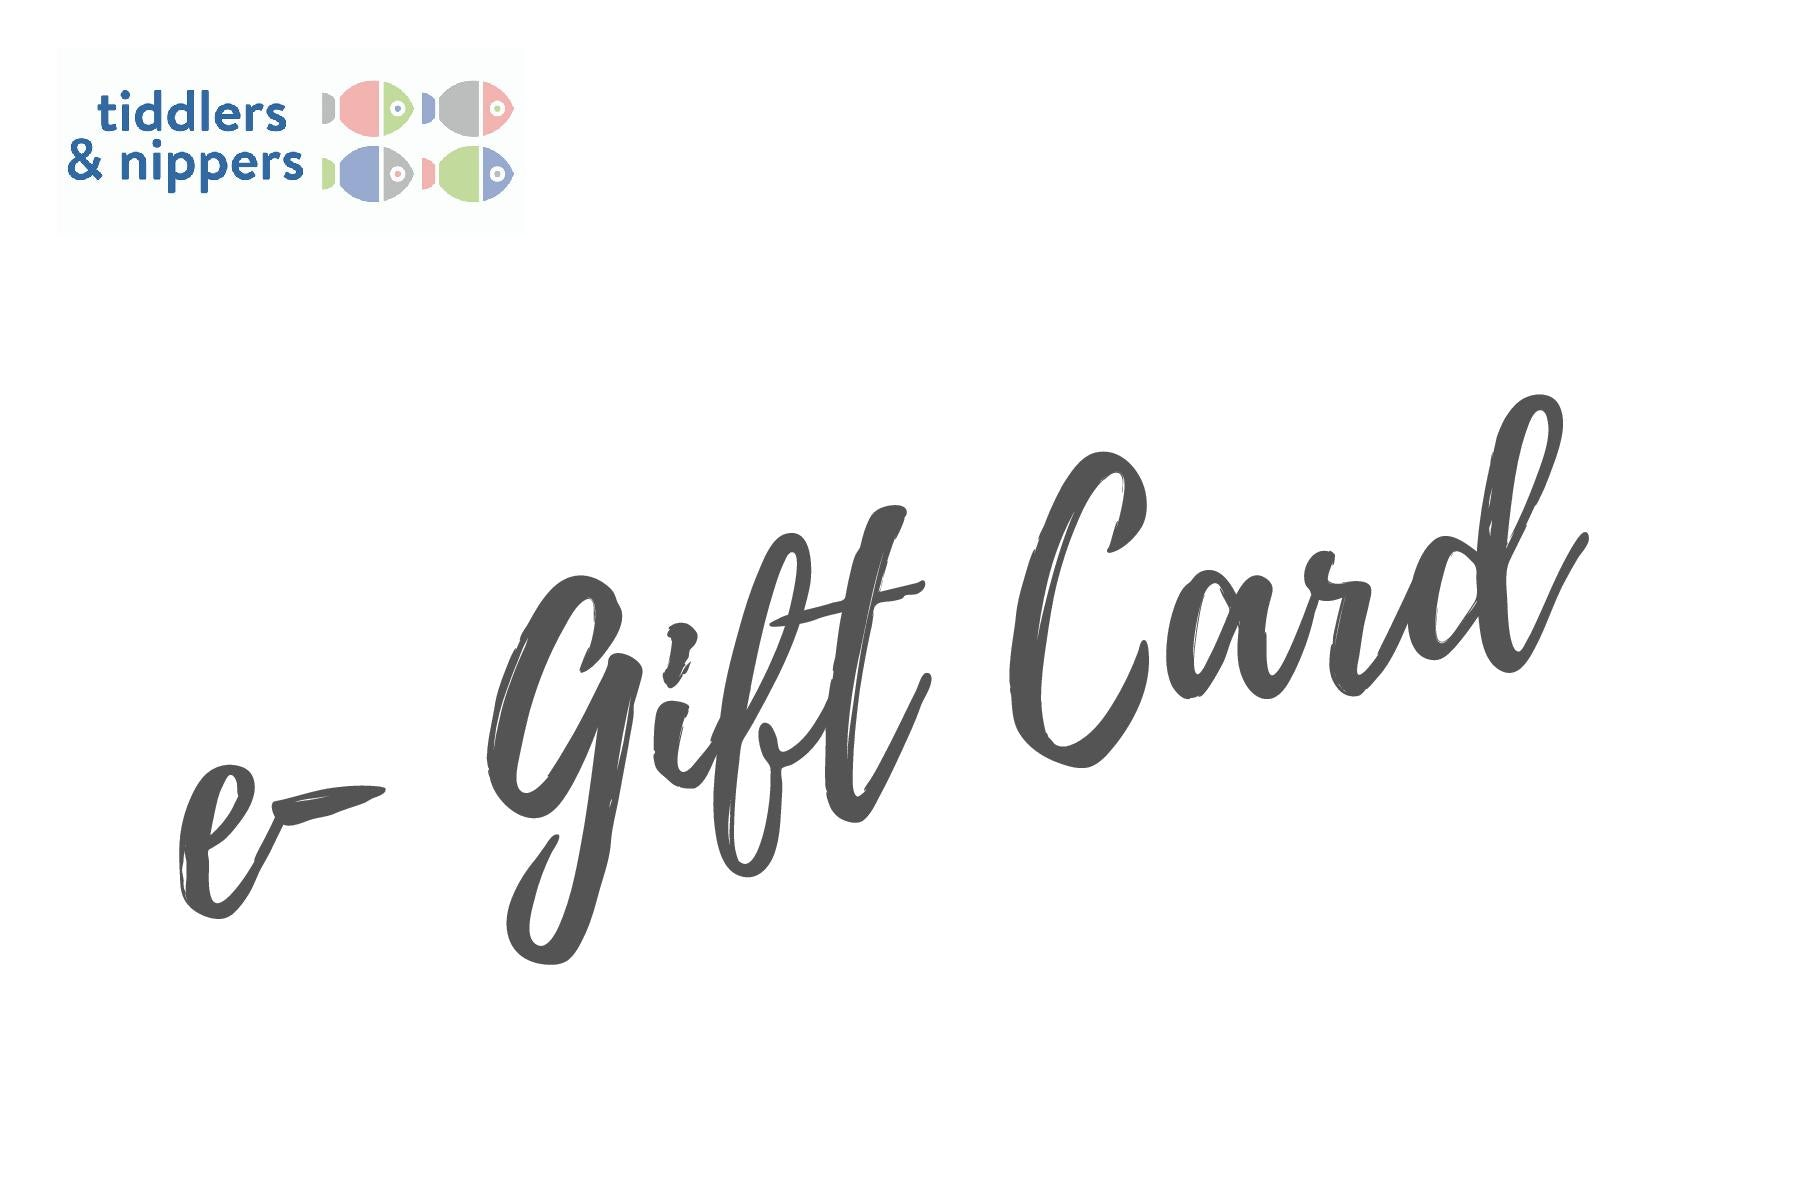 Tiddlers & Nippers Gift Card...